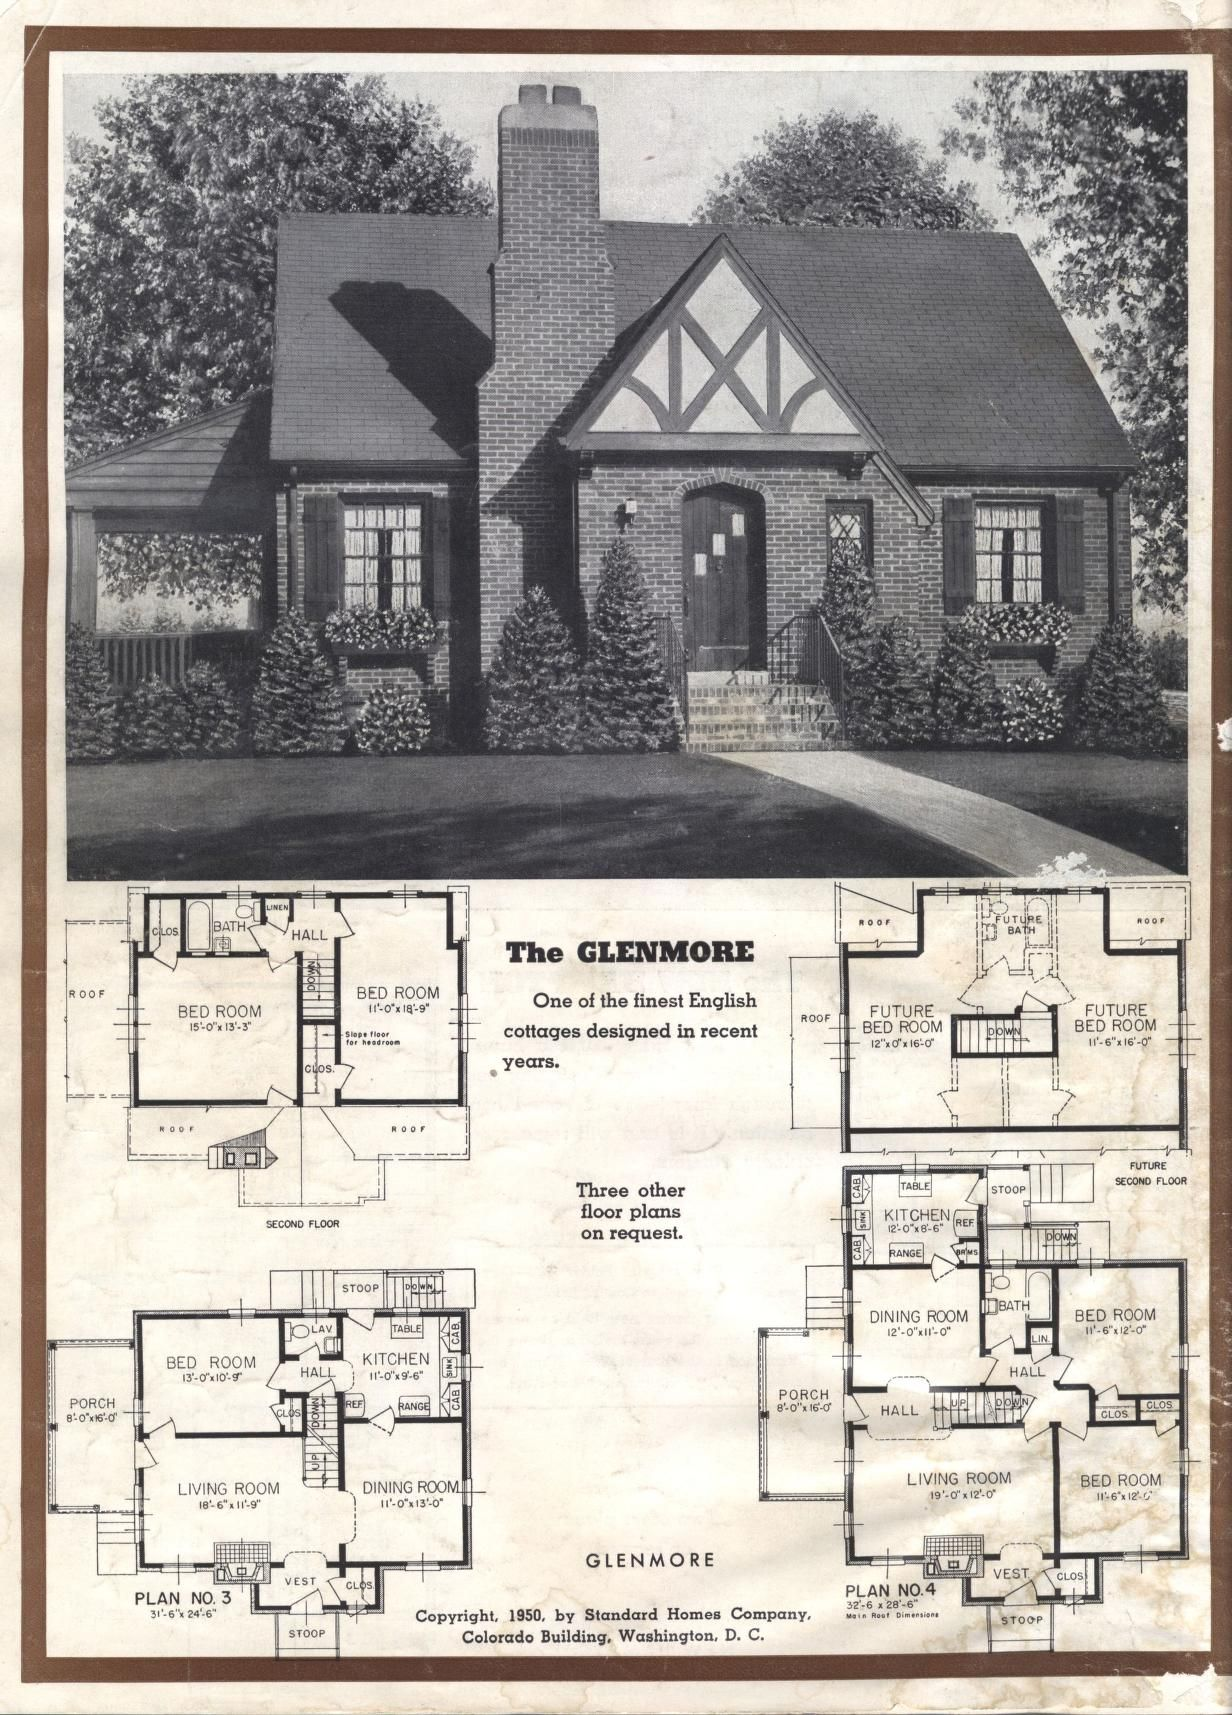 Better Homes At Lower Cost A 50 Standard Homes Co Free Download Borrow And Streaming Internet Archive House Plans With Pictures Vintage House Plans Small House Floor Plans